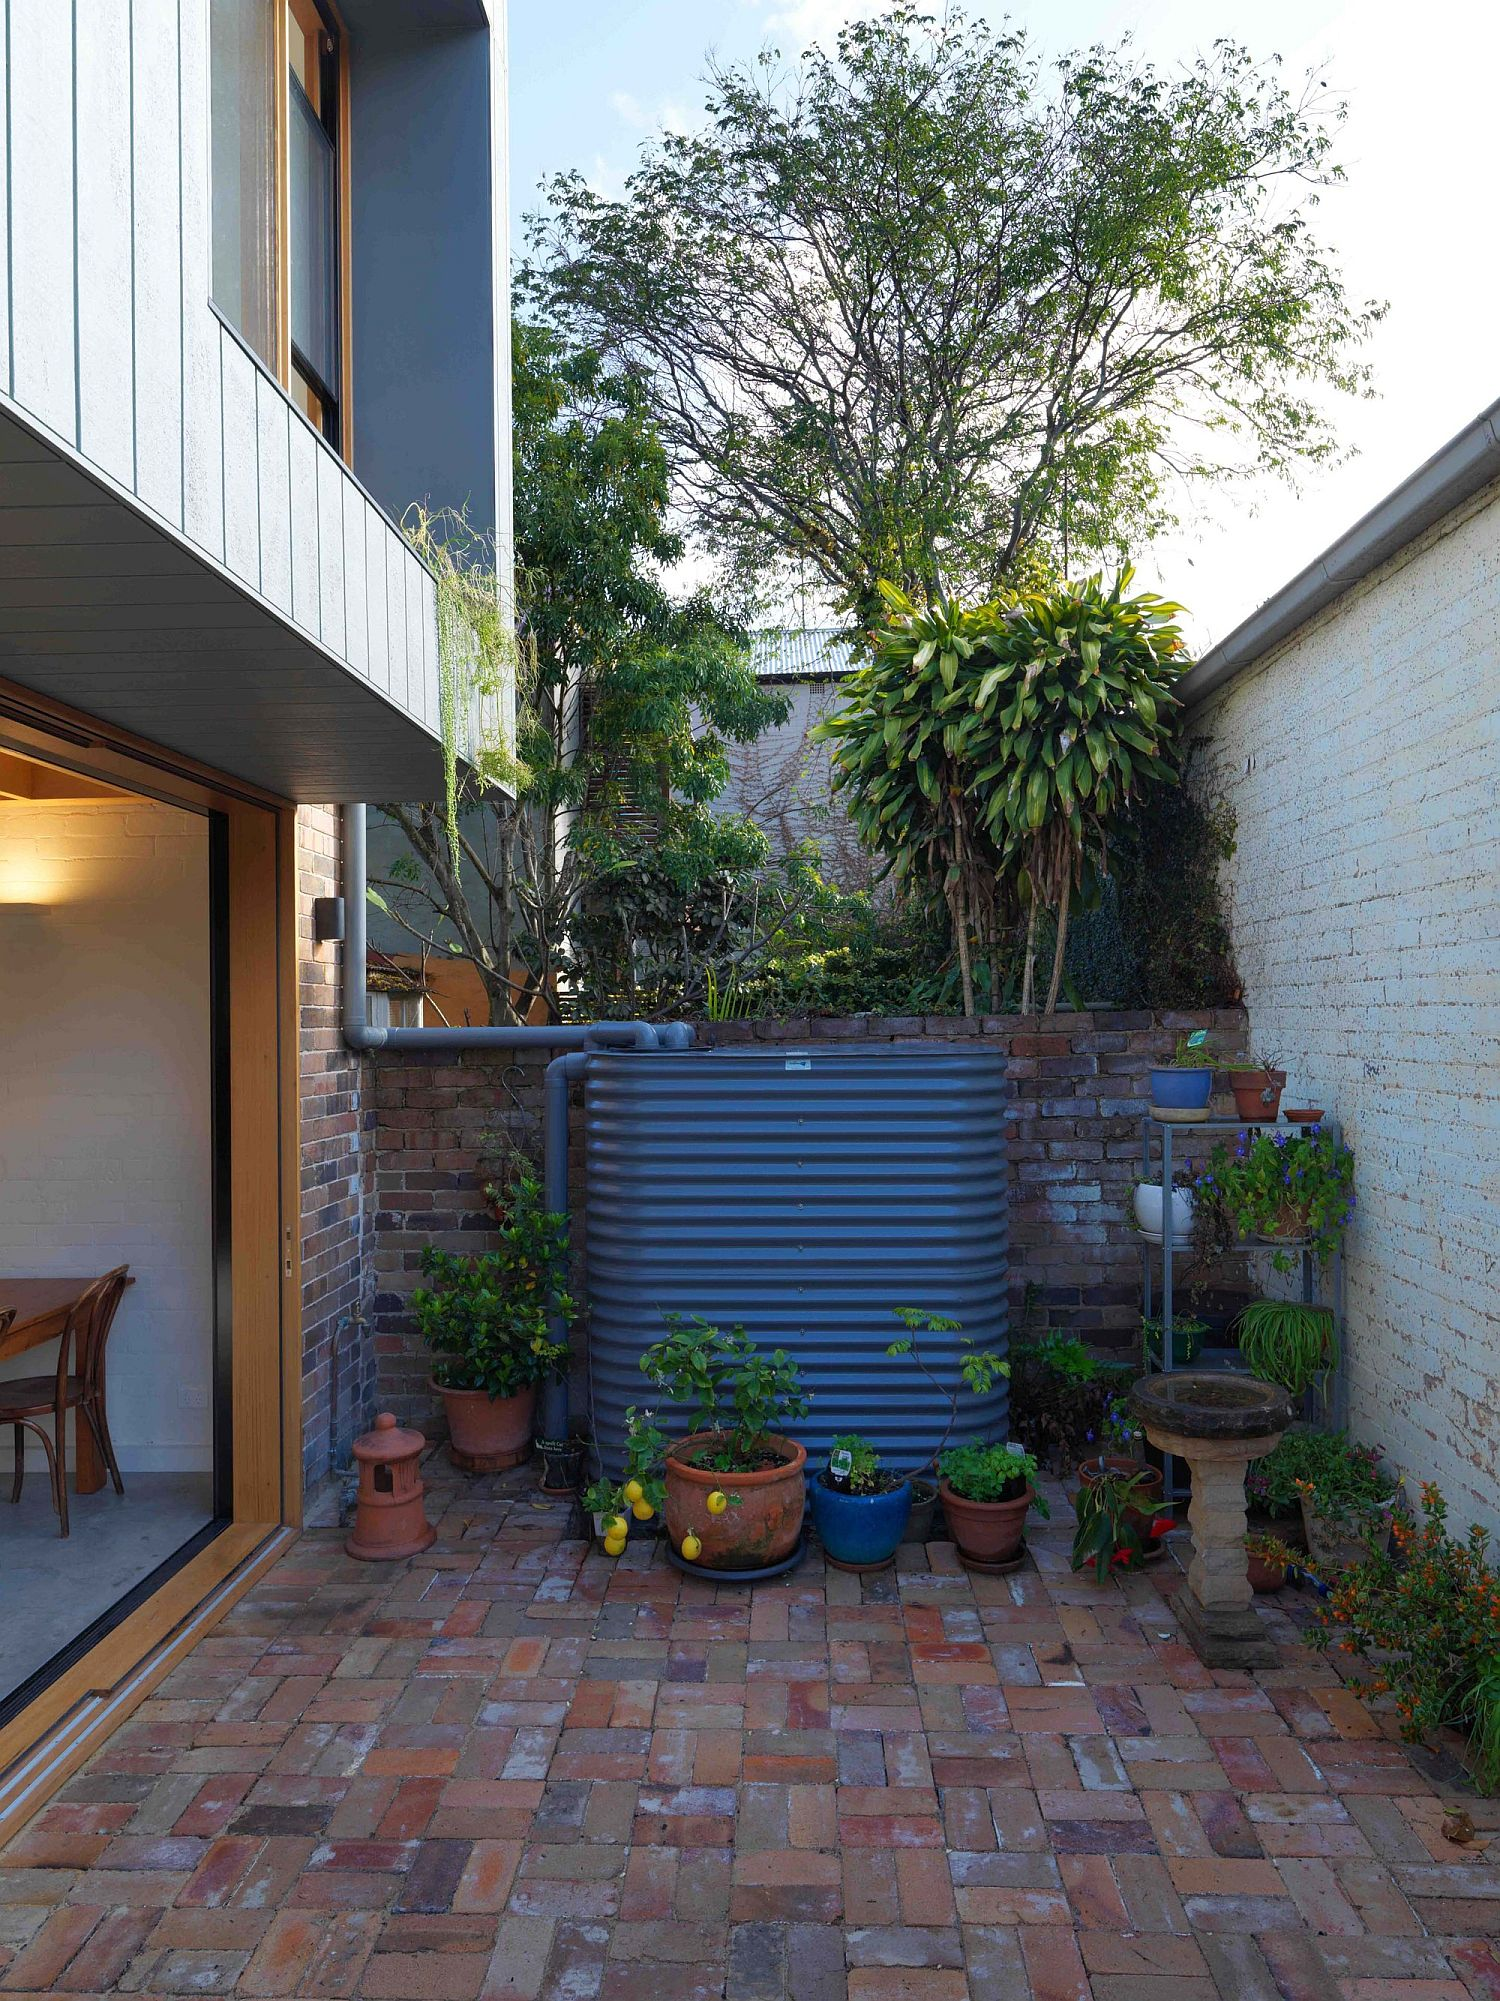 Overhang created by the rear second-level additions provides shade to the tiny backyard